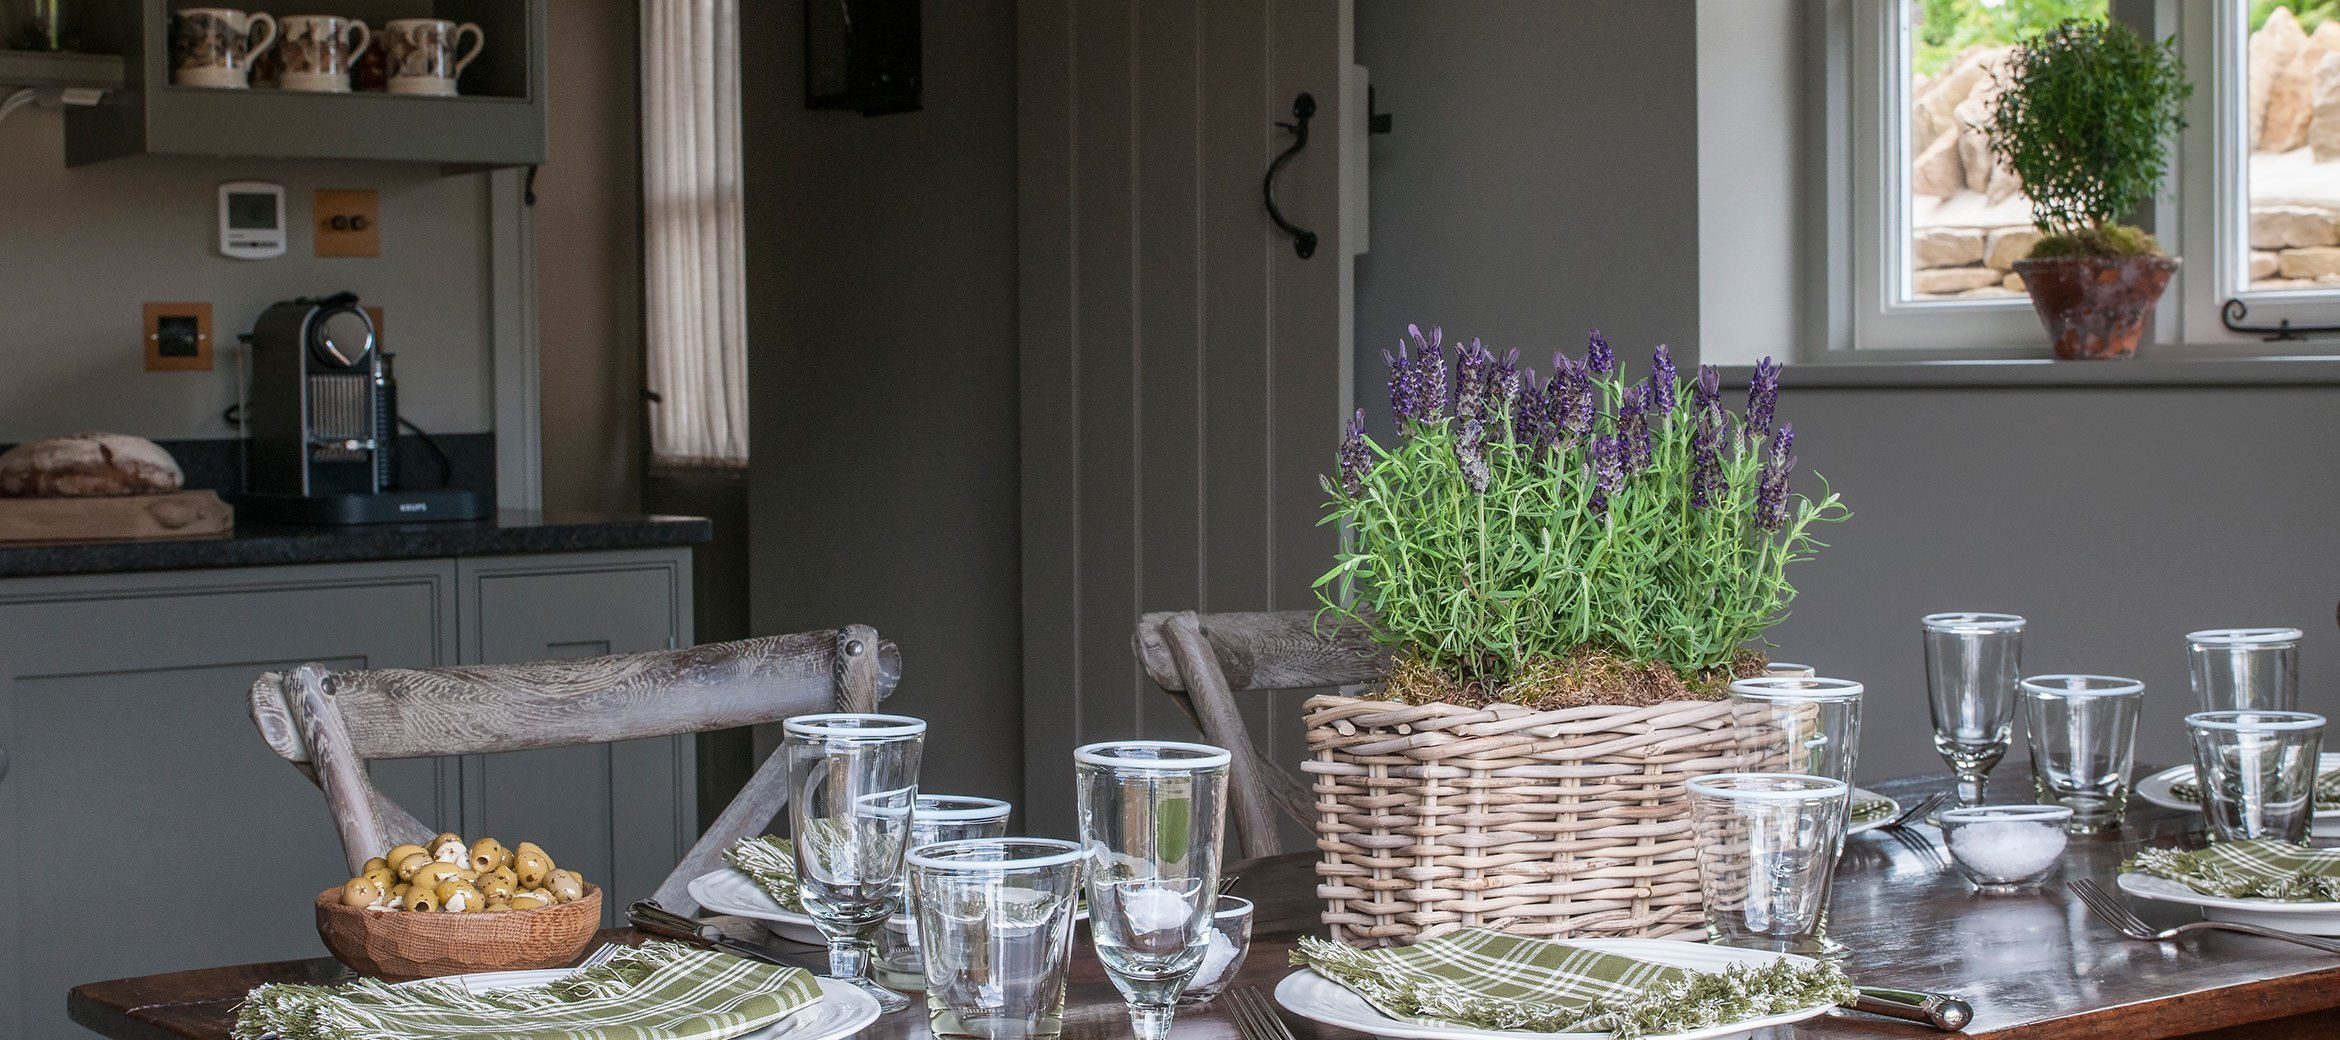 greys-luxury-cotswold-cottage-dining-table